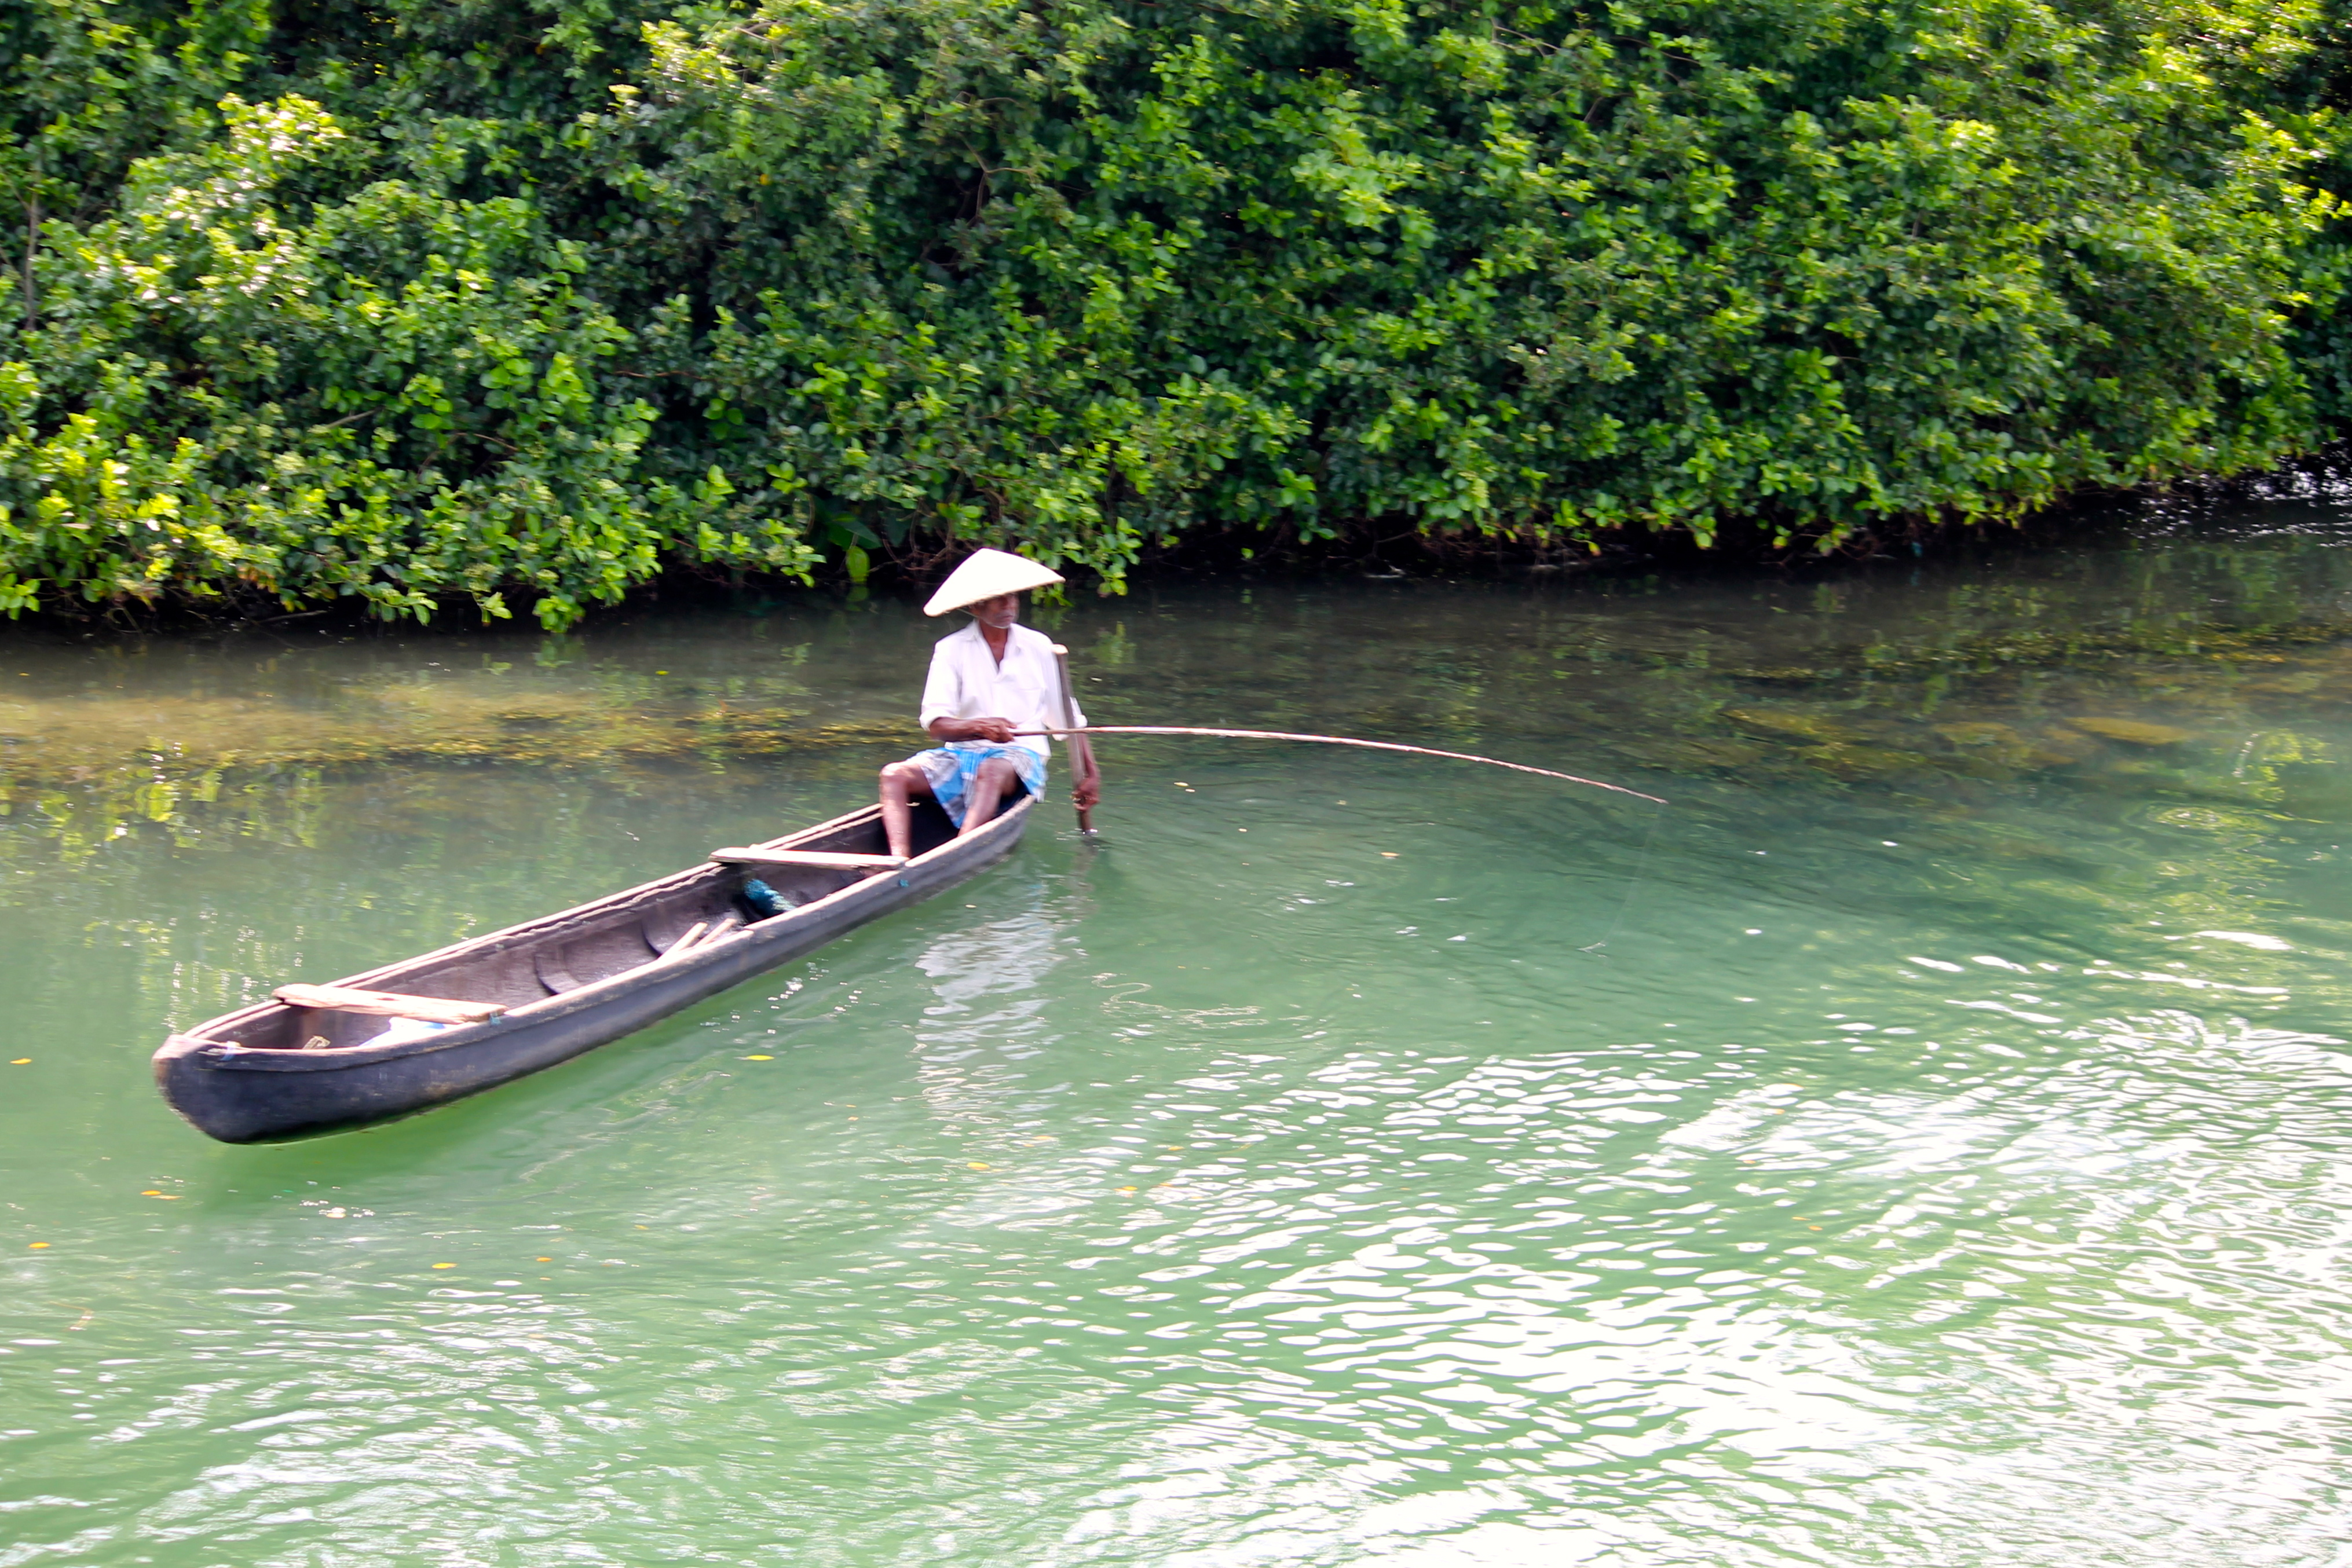 Traditional line fishing in the mangroves along the backwaters © Nisha D'Souza